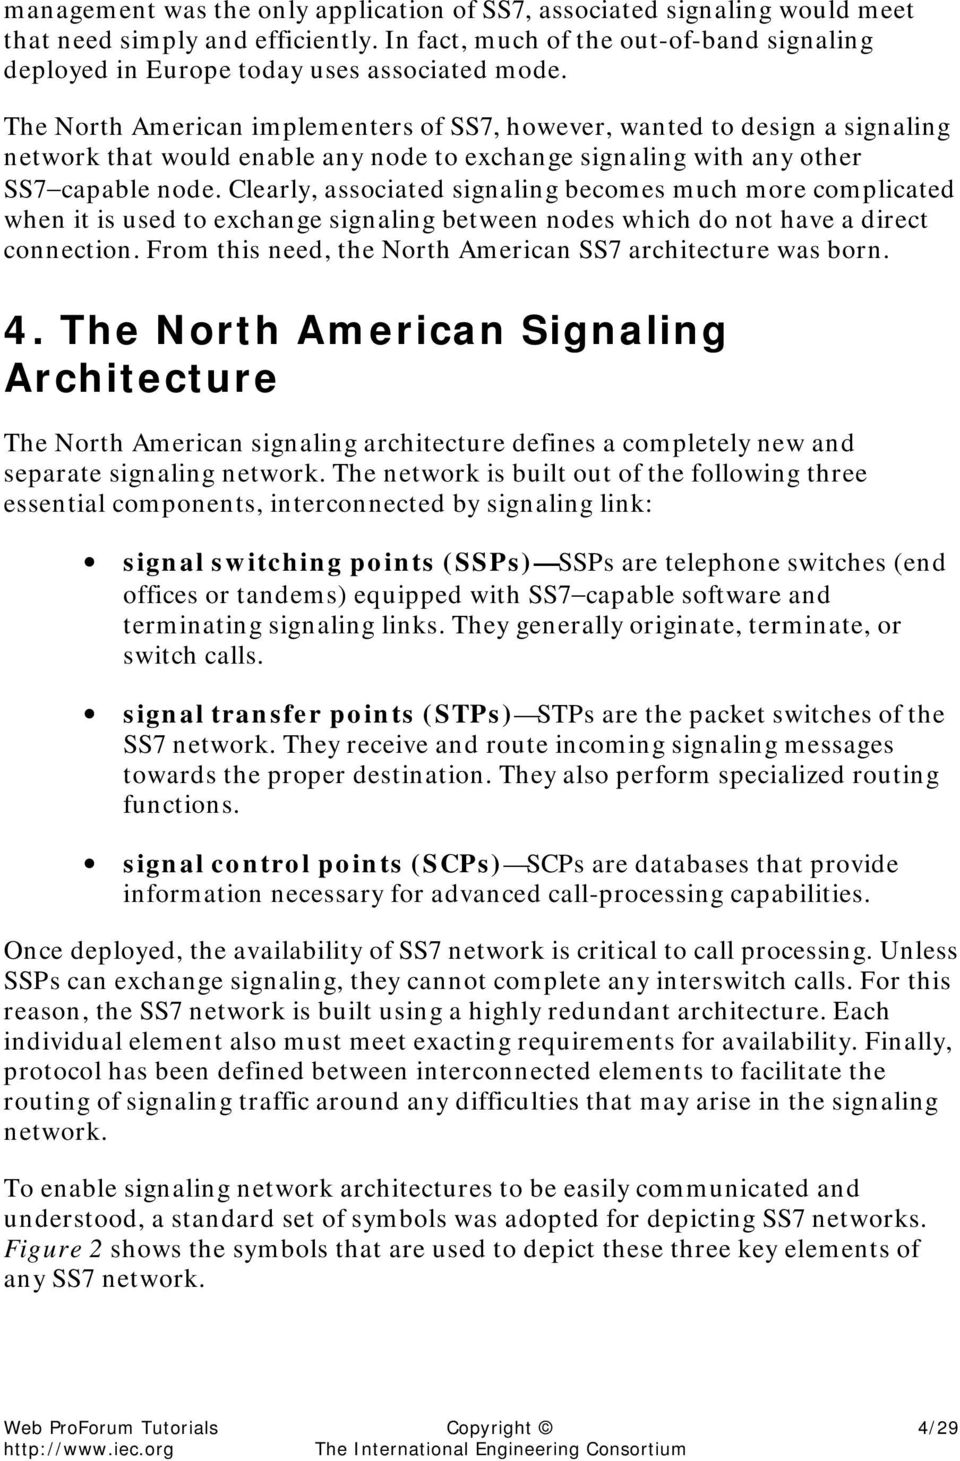 Clearly, associated signaling becomes much more complicated when it is used to exchange signaling between nodes which do not have a direct connection.